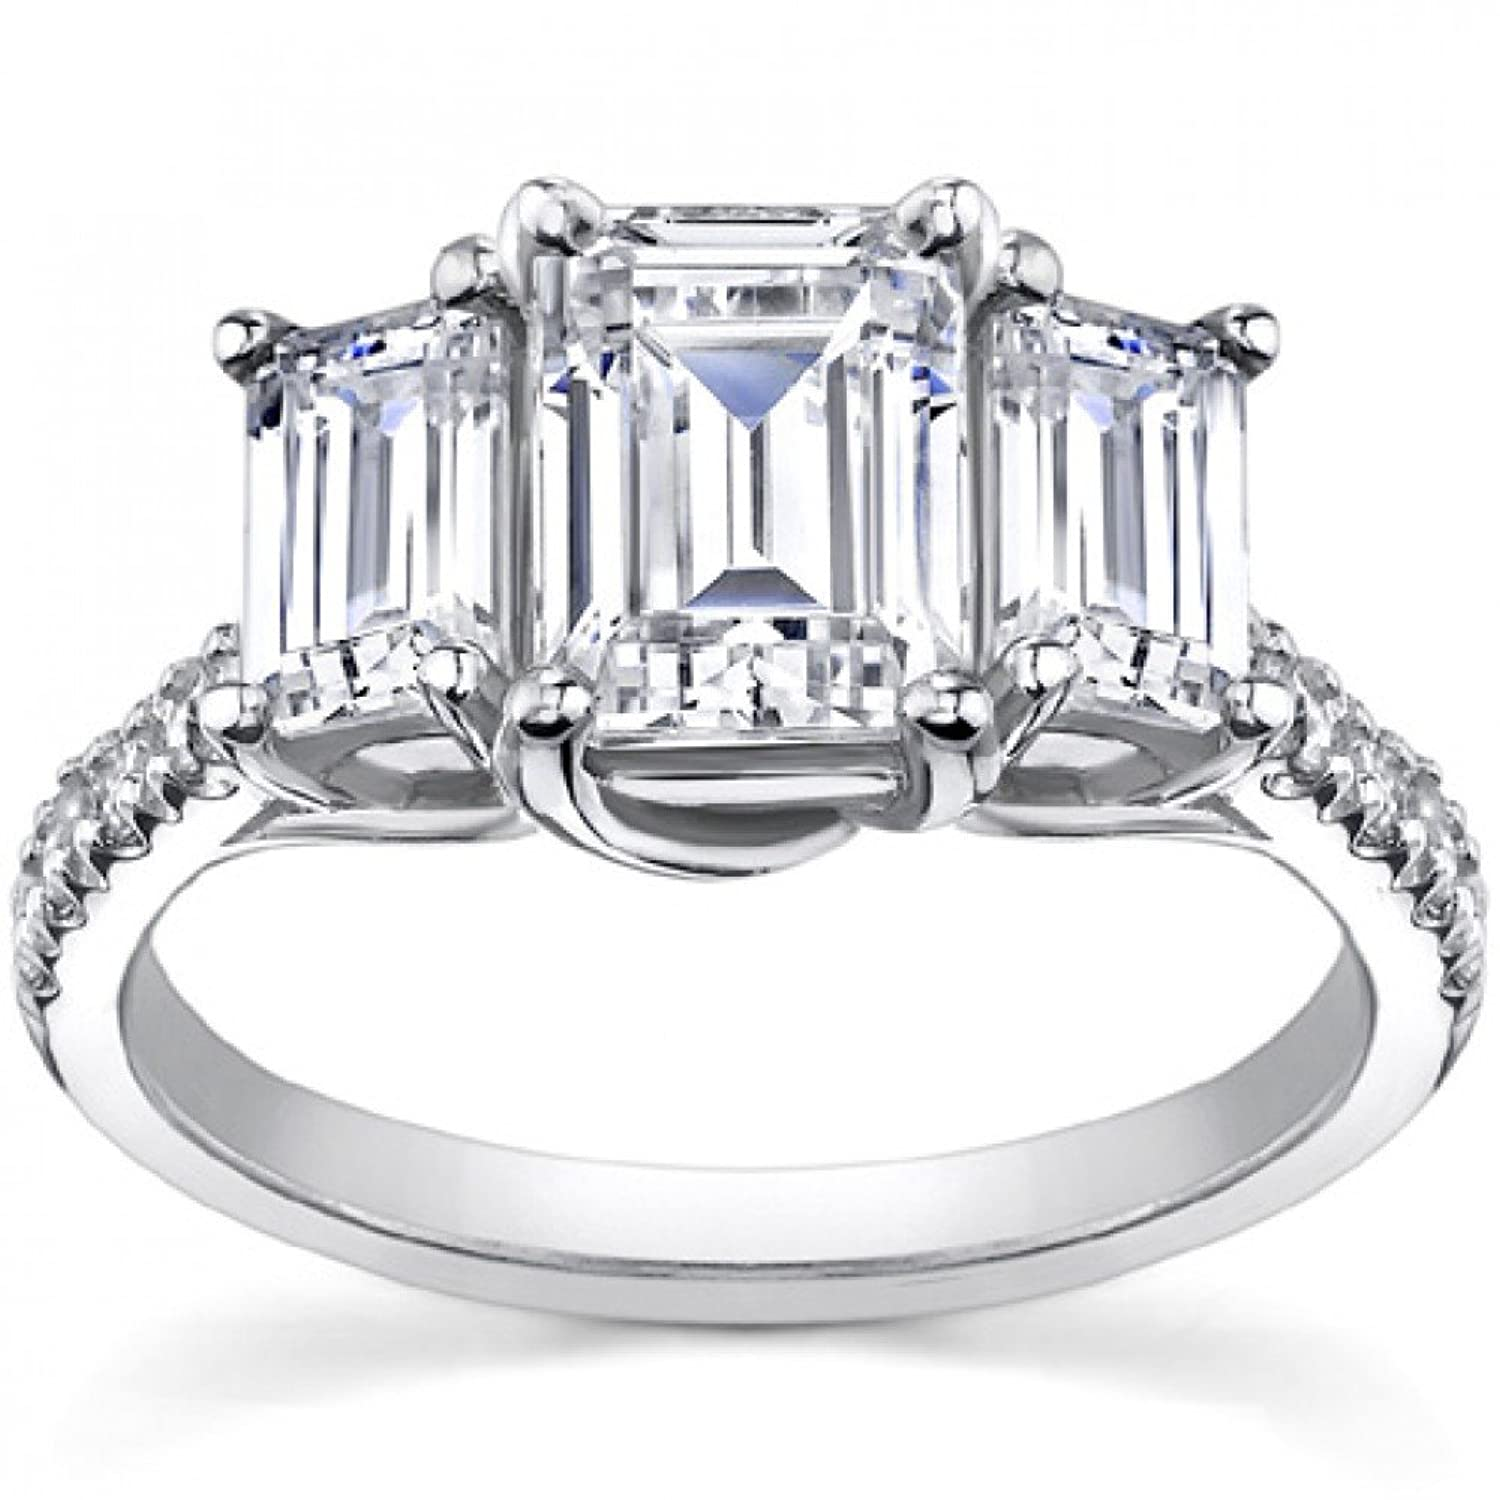 2 10 ct la s emerald cut diamond engagement ring in platinum